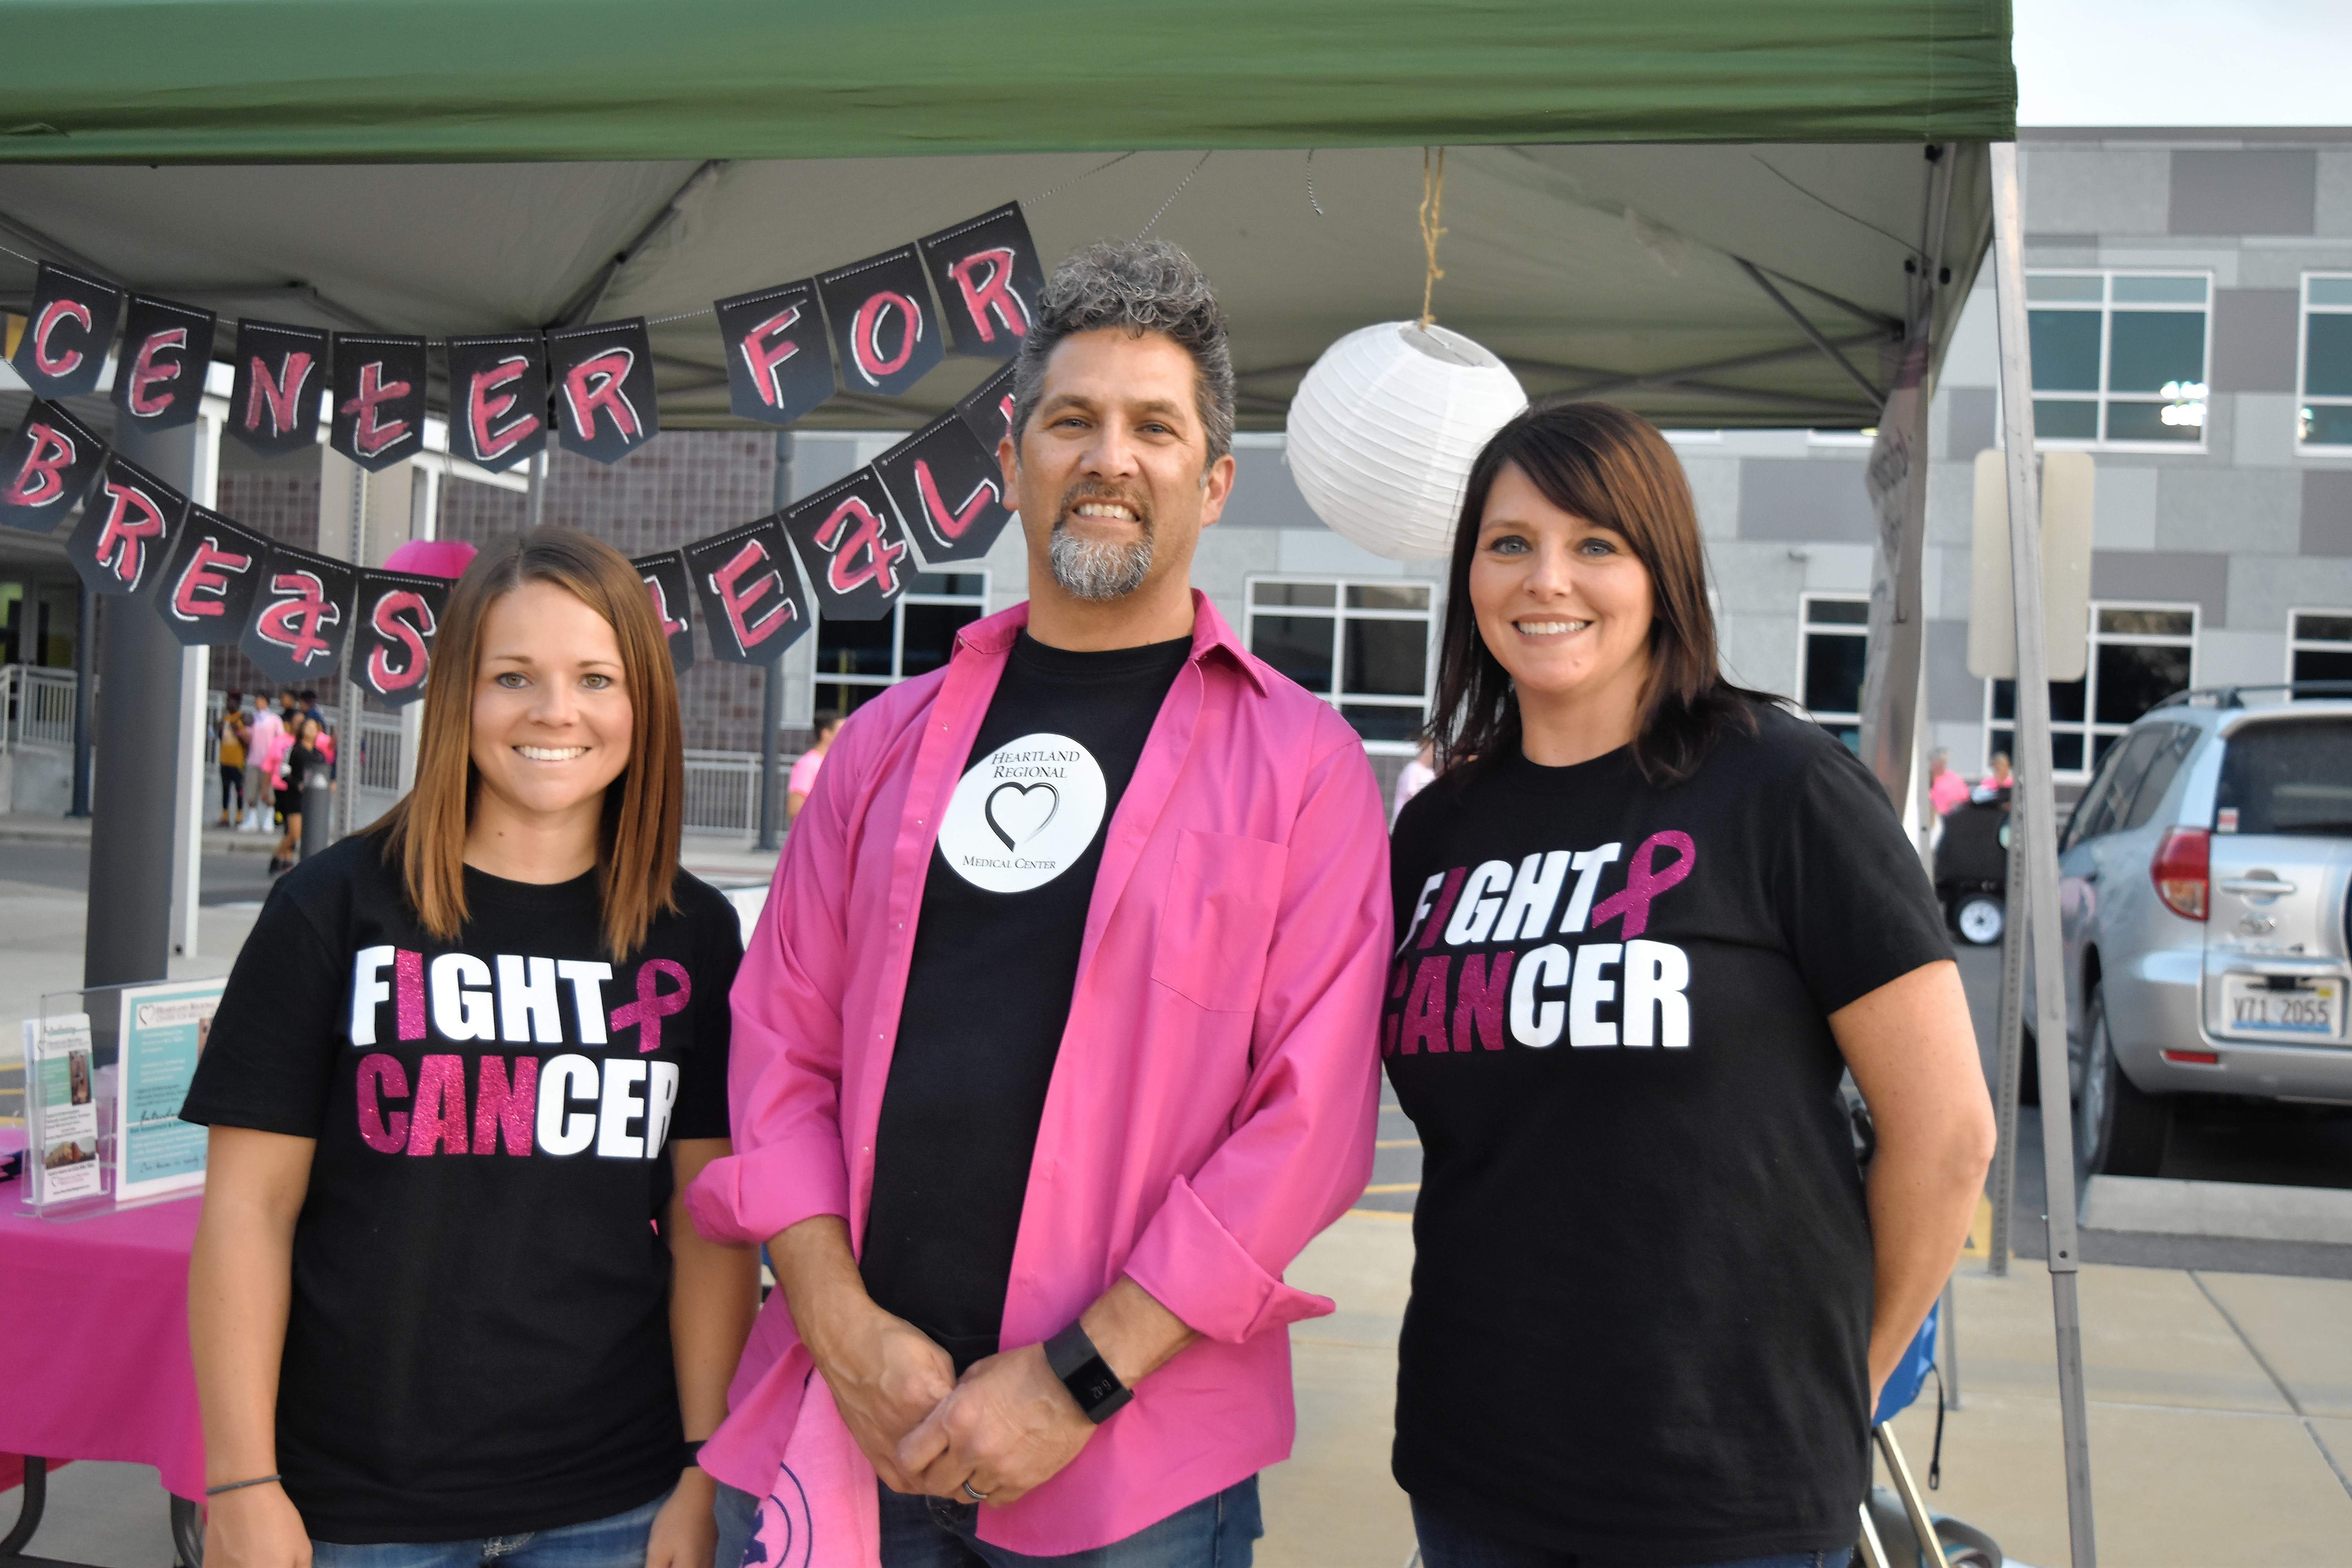 From left, Heartland Regional Medical Center's Shelbi Belcher, radiology technician, Herby Voss, public relations director, and Teresa George, radiology technician.